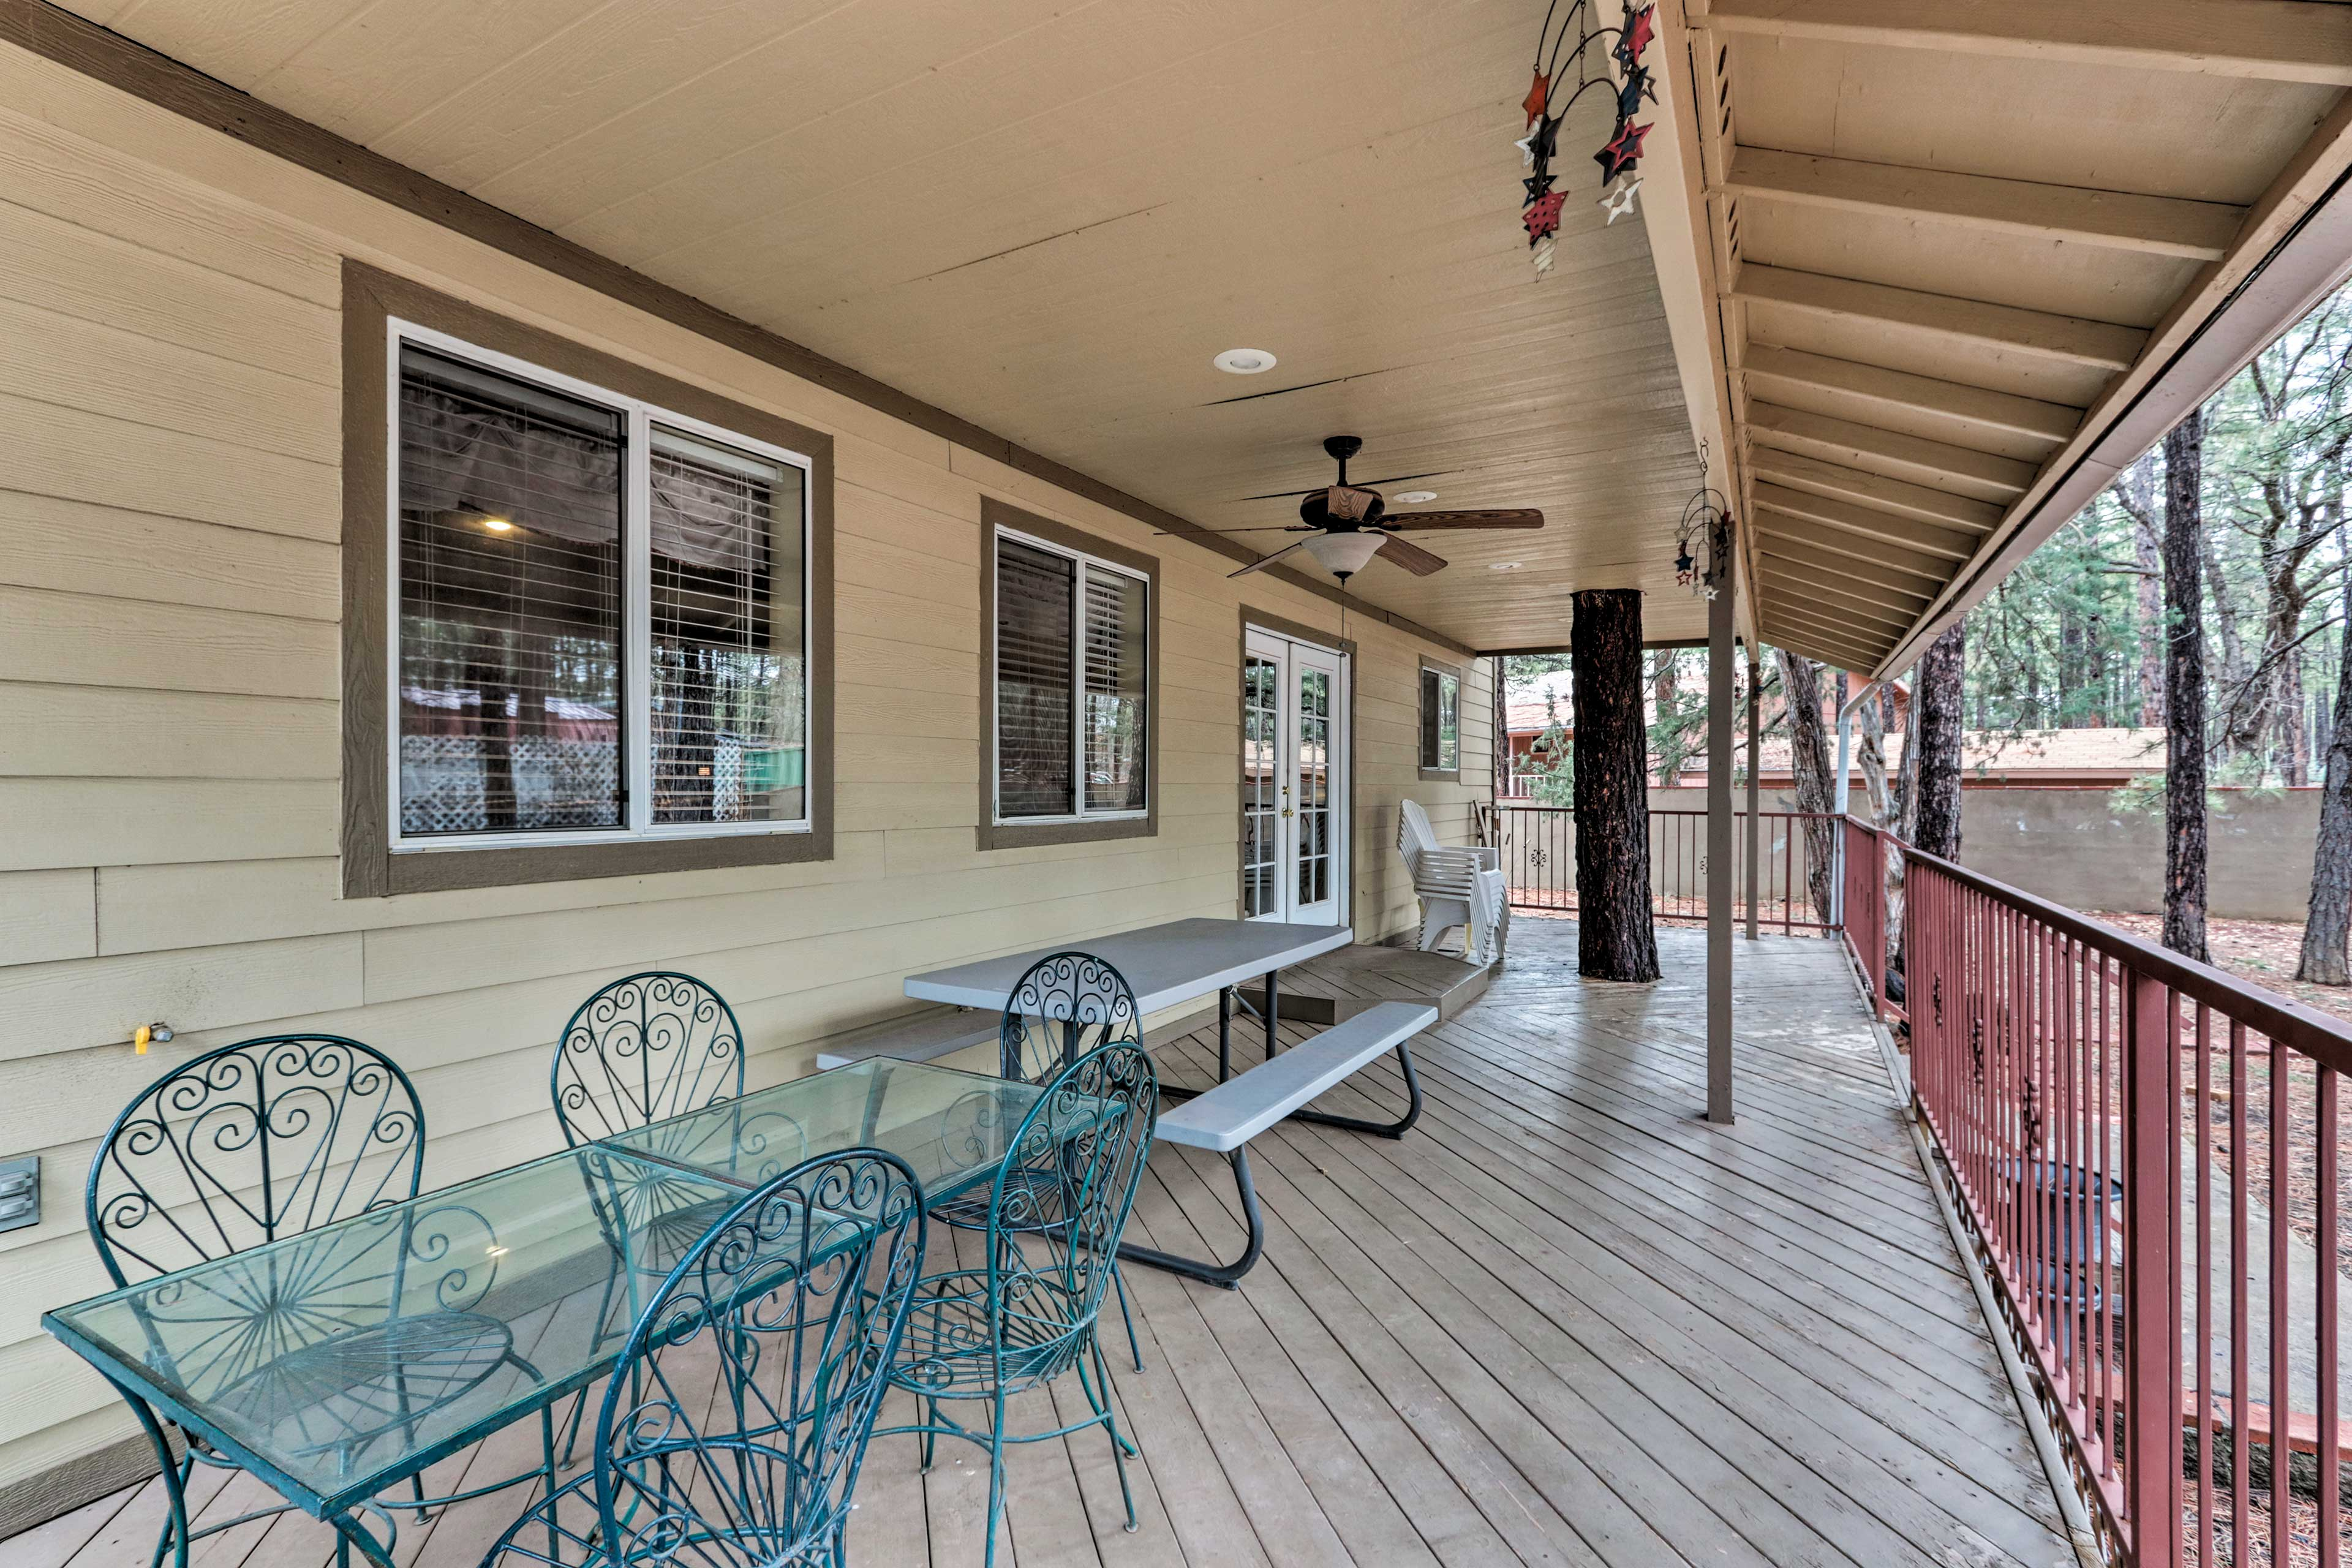 Take your meals al fresco on the covered porch.